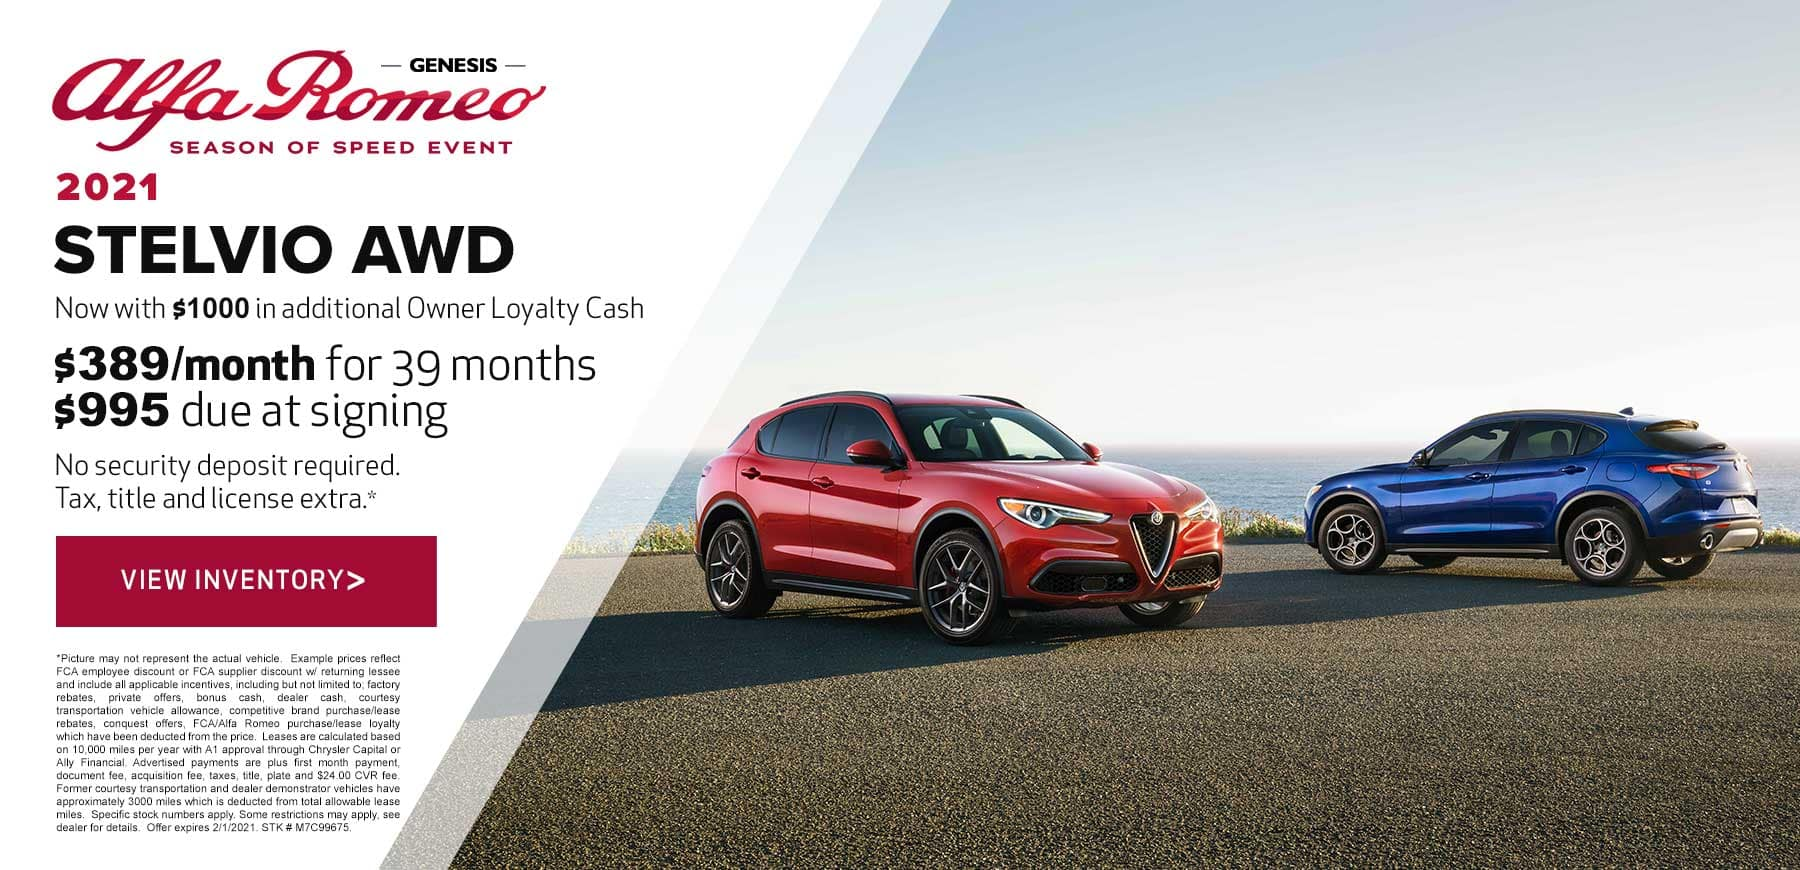 Genesis Alfa Romeo January 2021 Stelvio Lease Offer